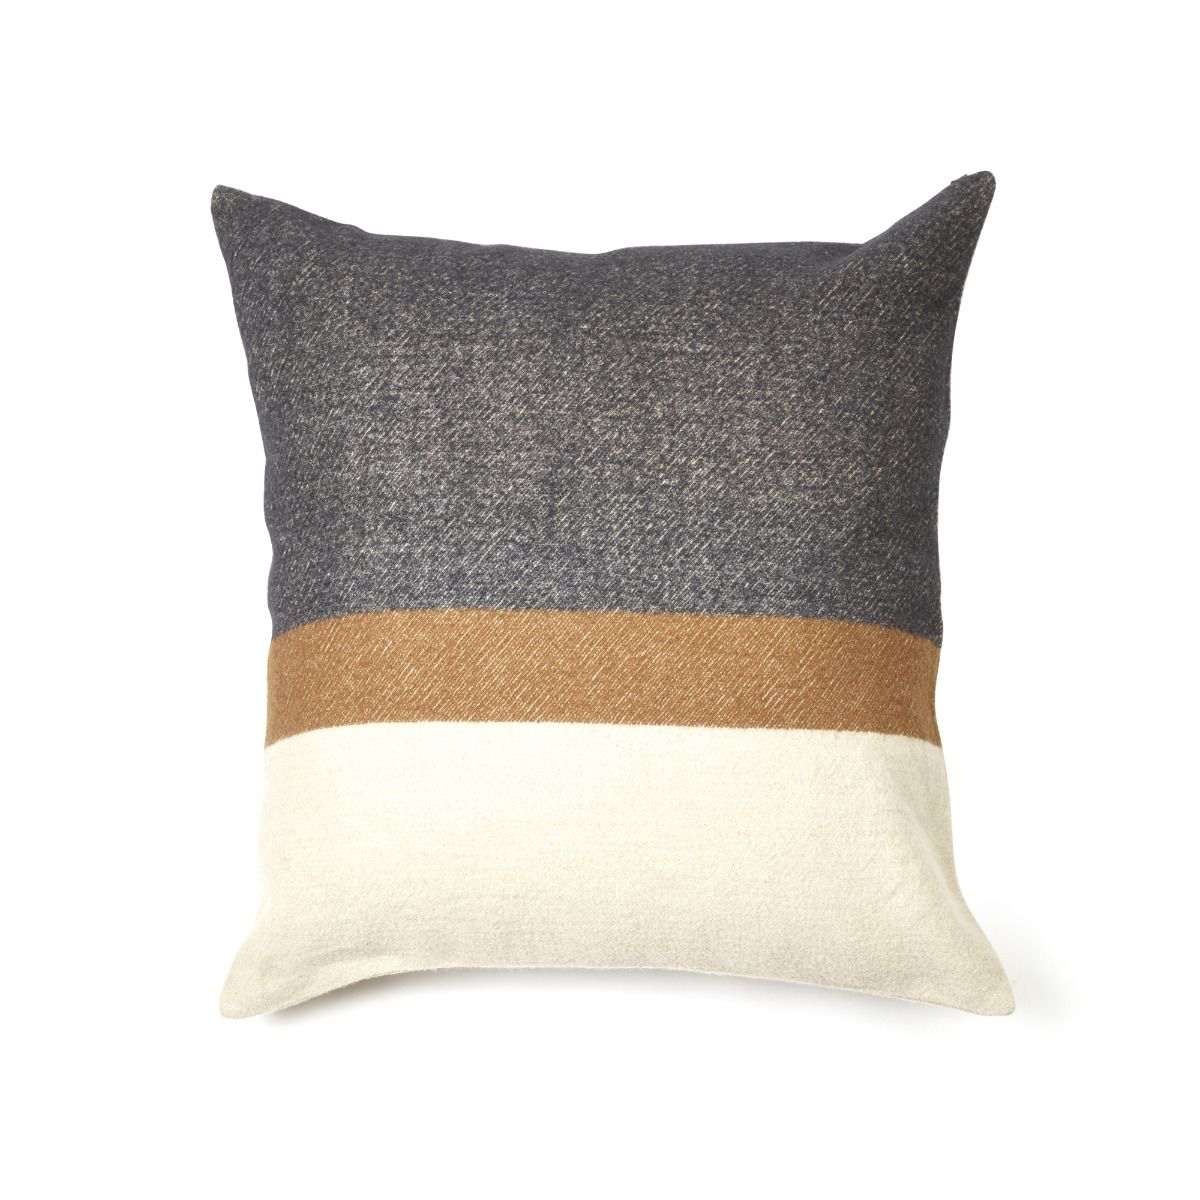 nash throw pillows, libeco, accessories | pillows and cushions, - adorn.house